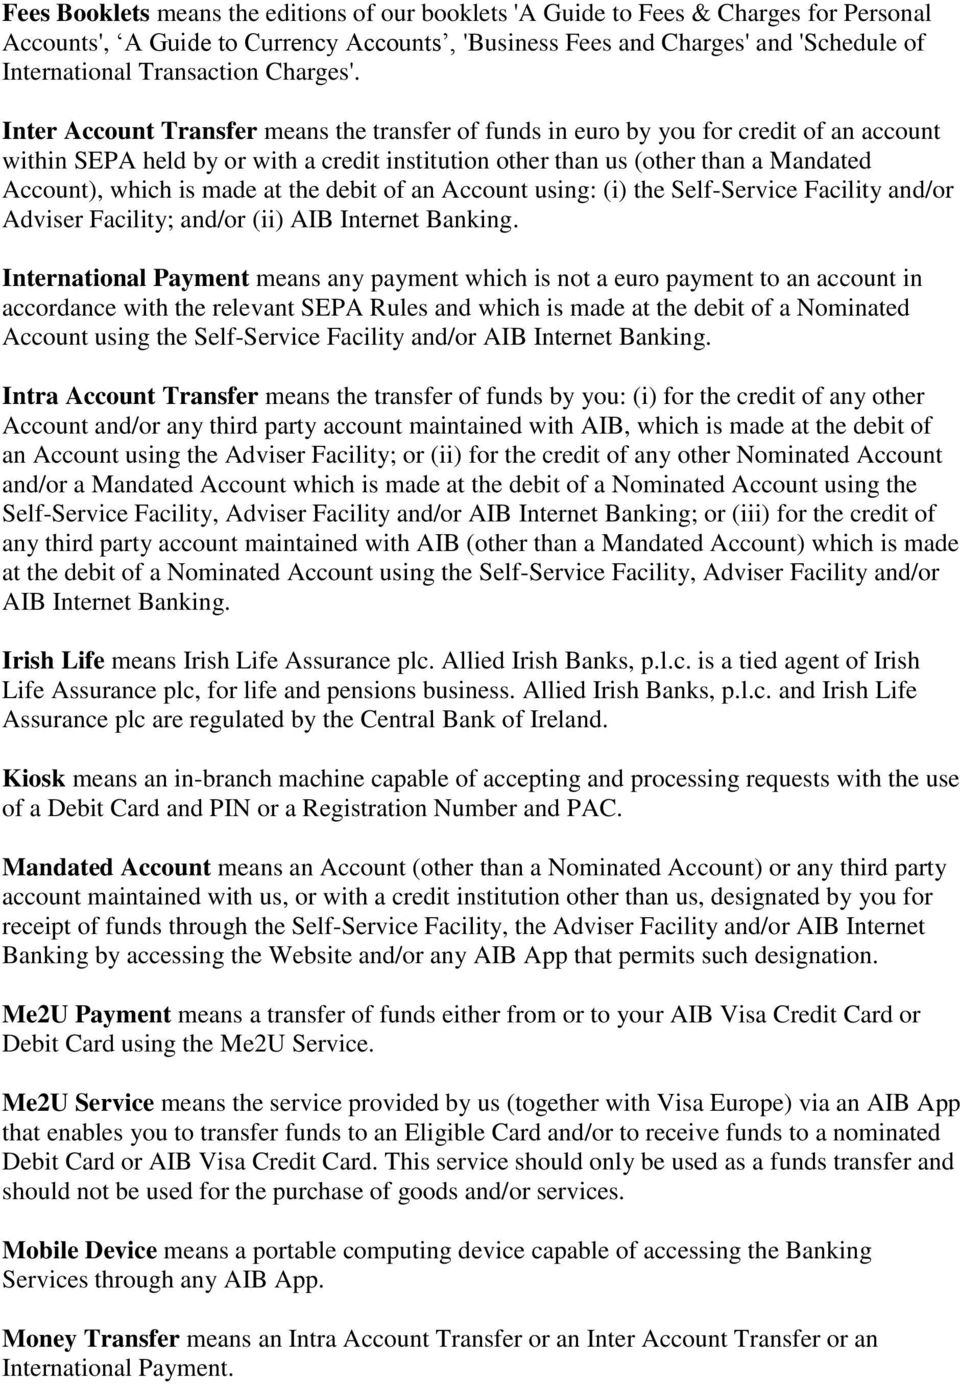 Inter Account Transfer means the transfer of funds in euro by you for credit of an account within SEPA held by or with a credit institution other than us (other than a Mandated Account), which is